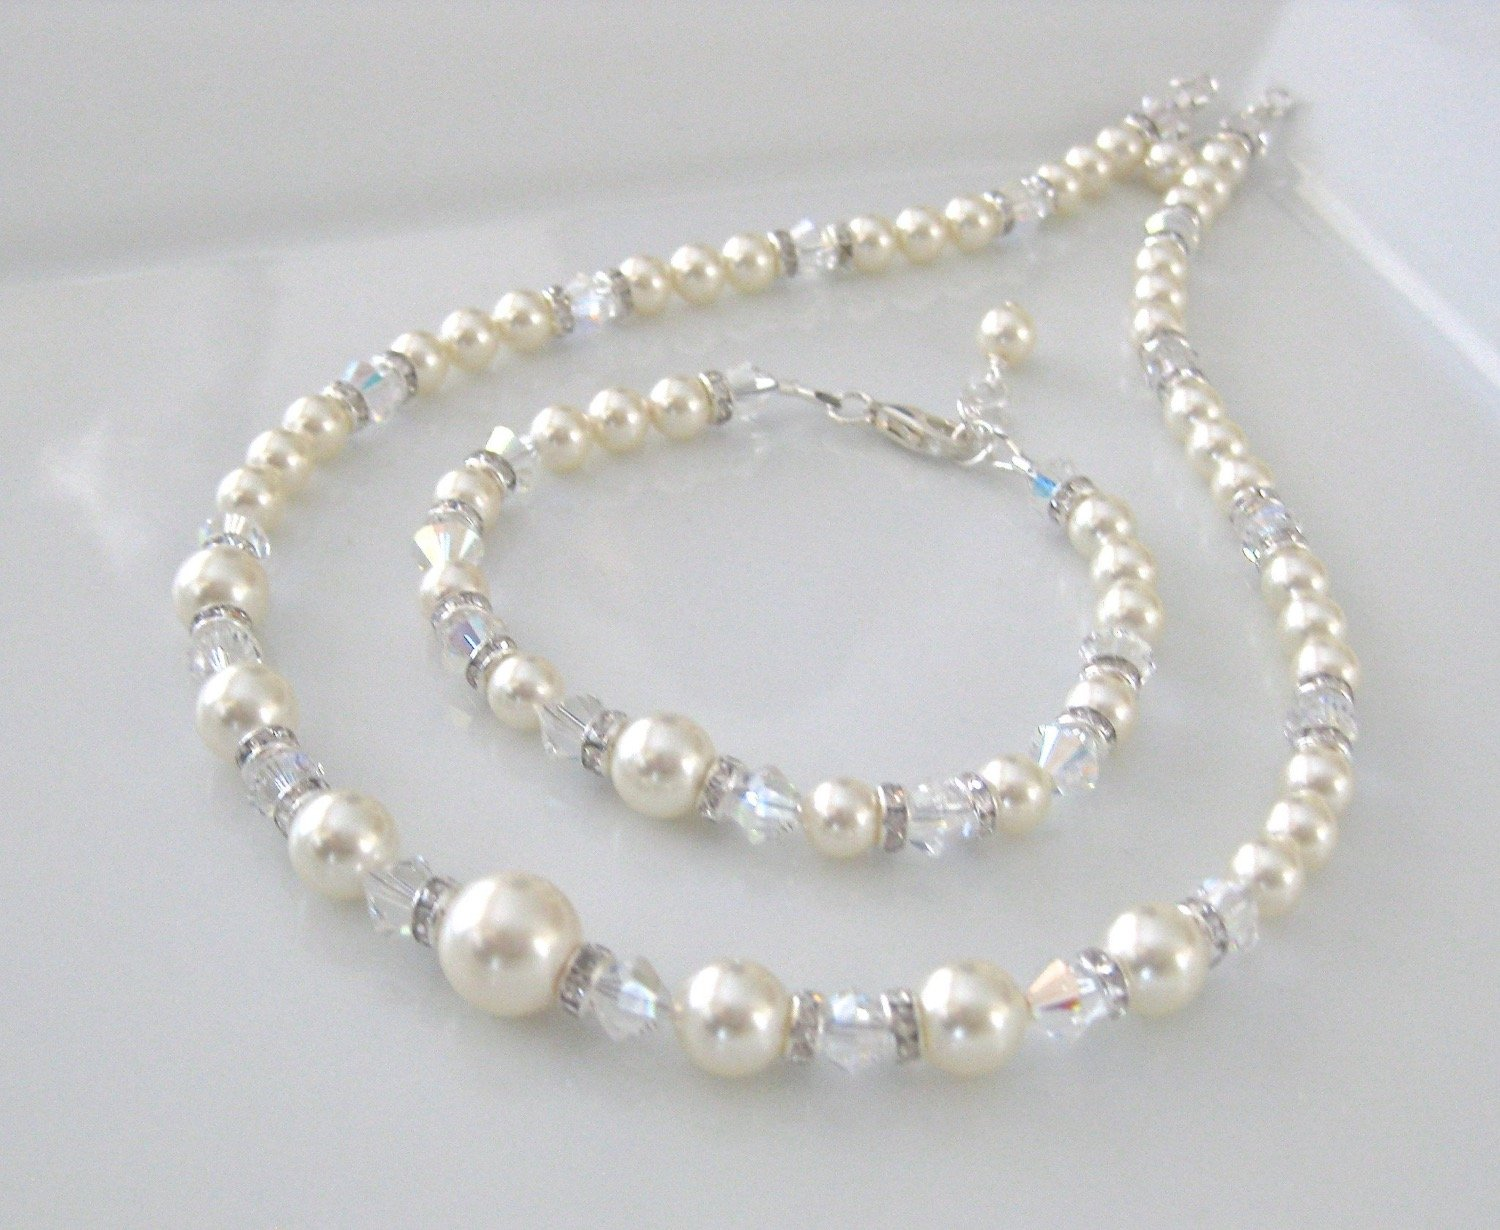 Pearl Jewelry Set Bridal Necklace, Bracelet and Earrings - Clairesbridal - 2